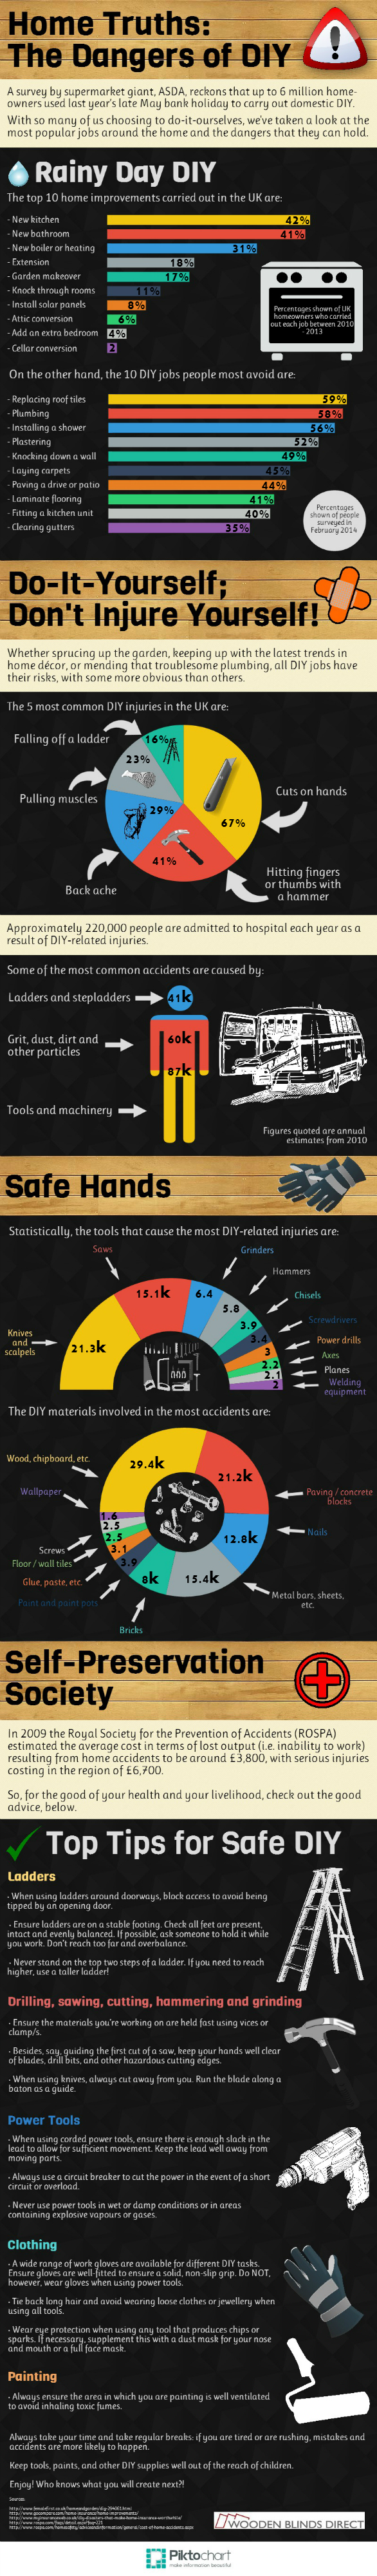 Home Truths-The Dangers of DIY. An infographic showcasing statistics on injuries caused by DIY.